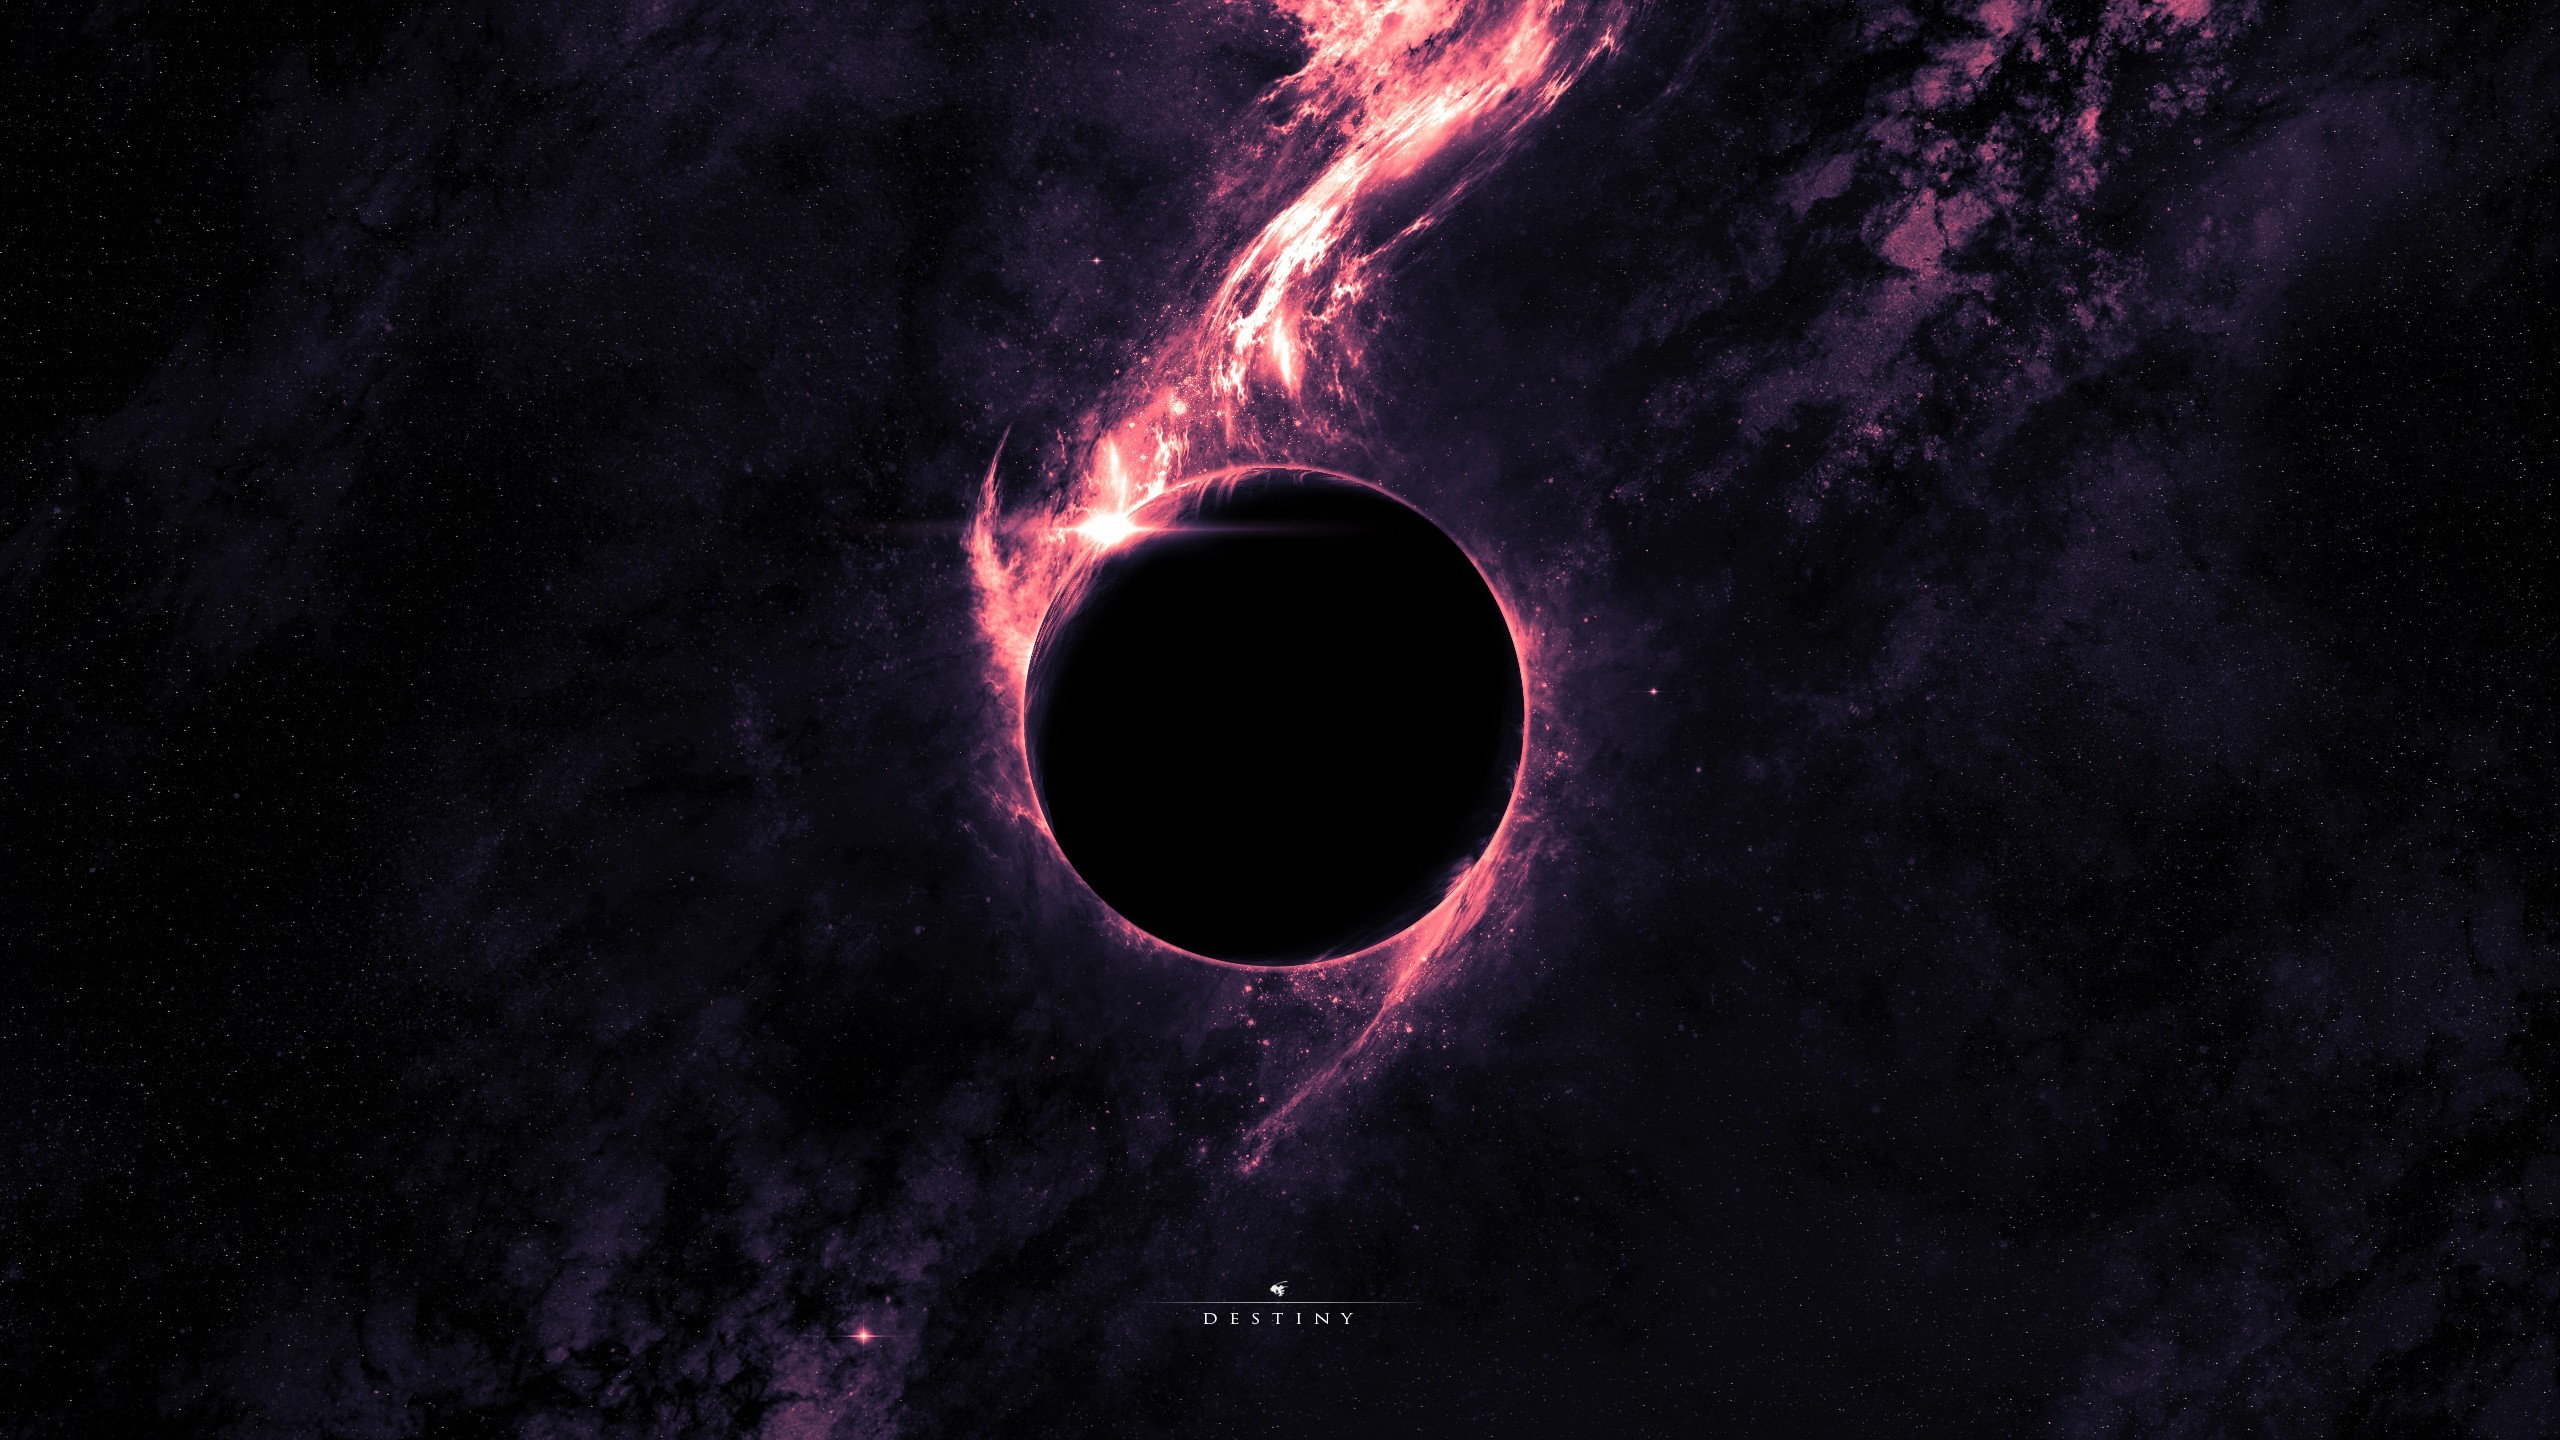 Space Black Hole wallpapers (16 Wallpapers)